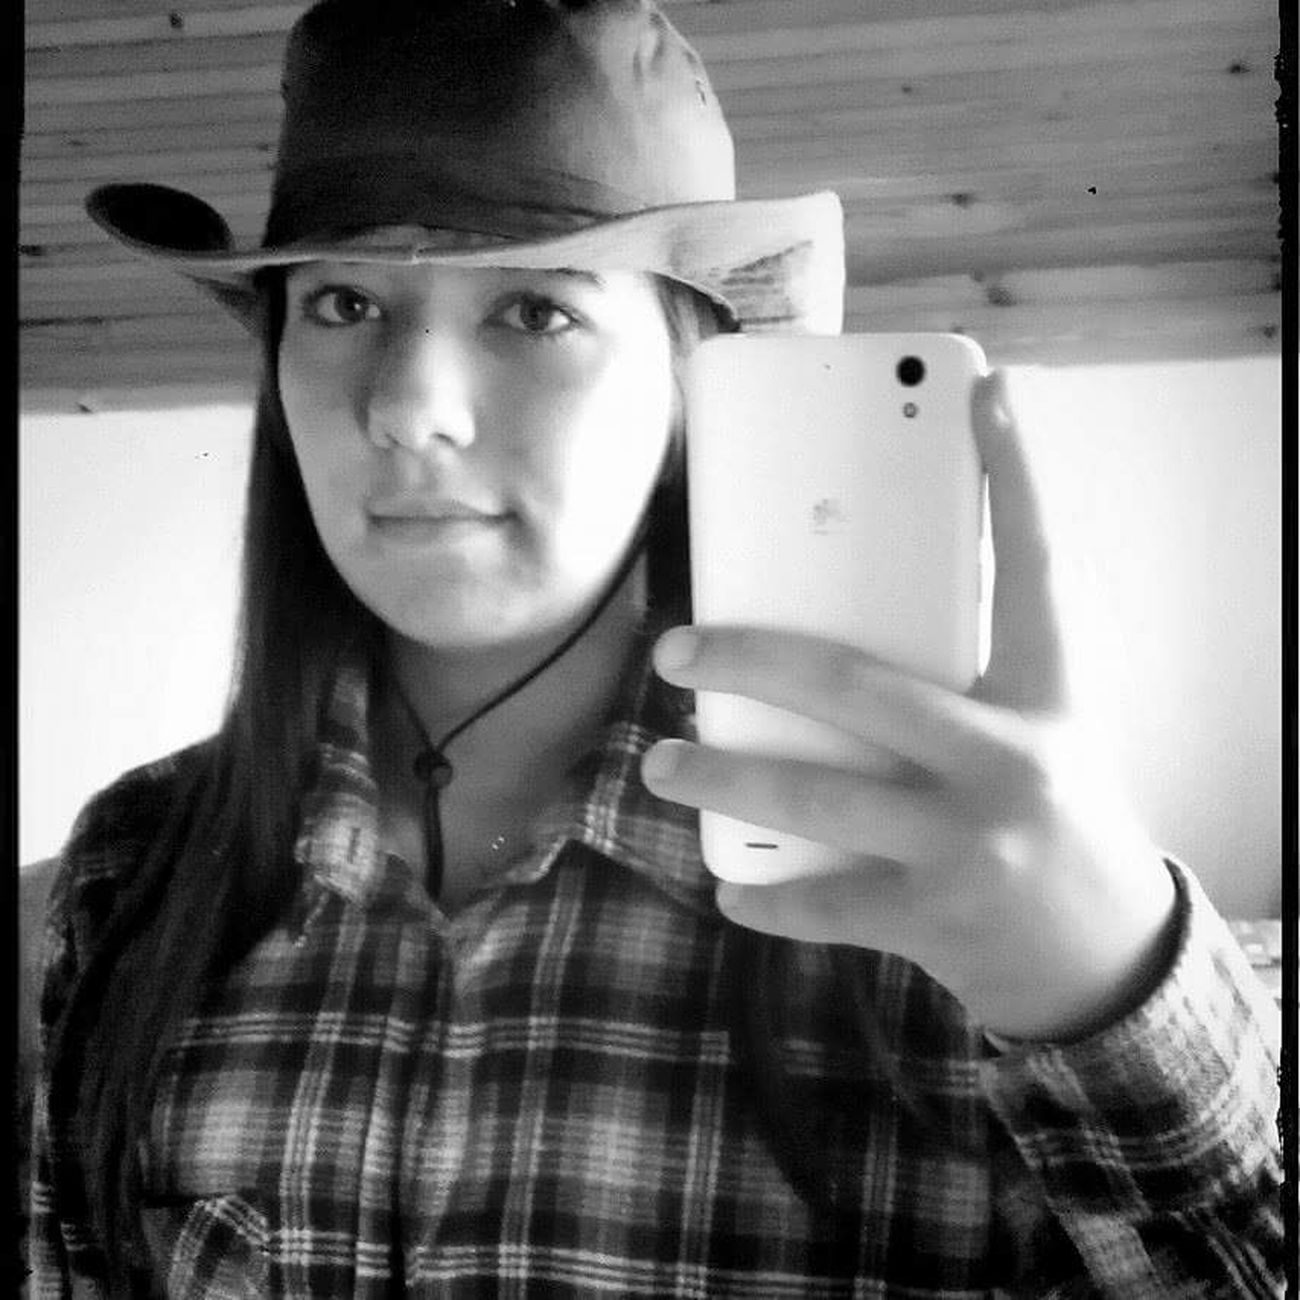 Cowboy Hat Cowboy Country Girl Selfie ✌ Cowboy Girl Cowboy Style